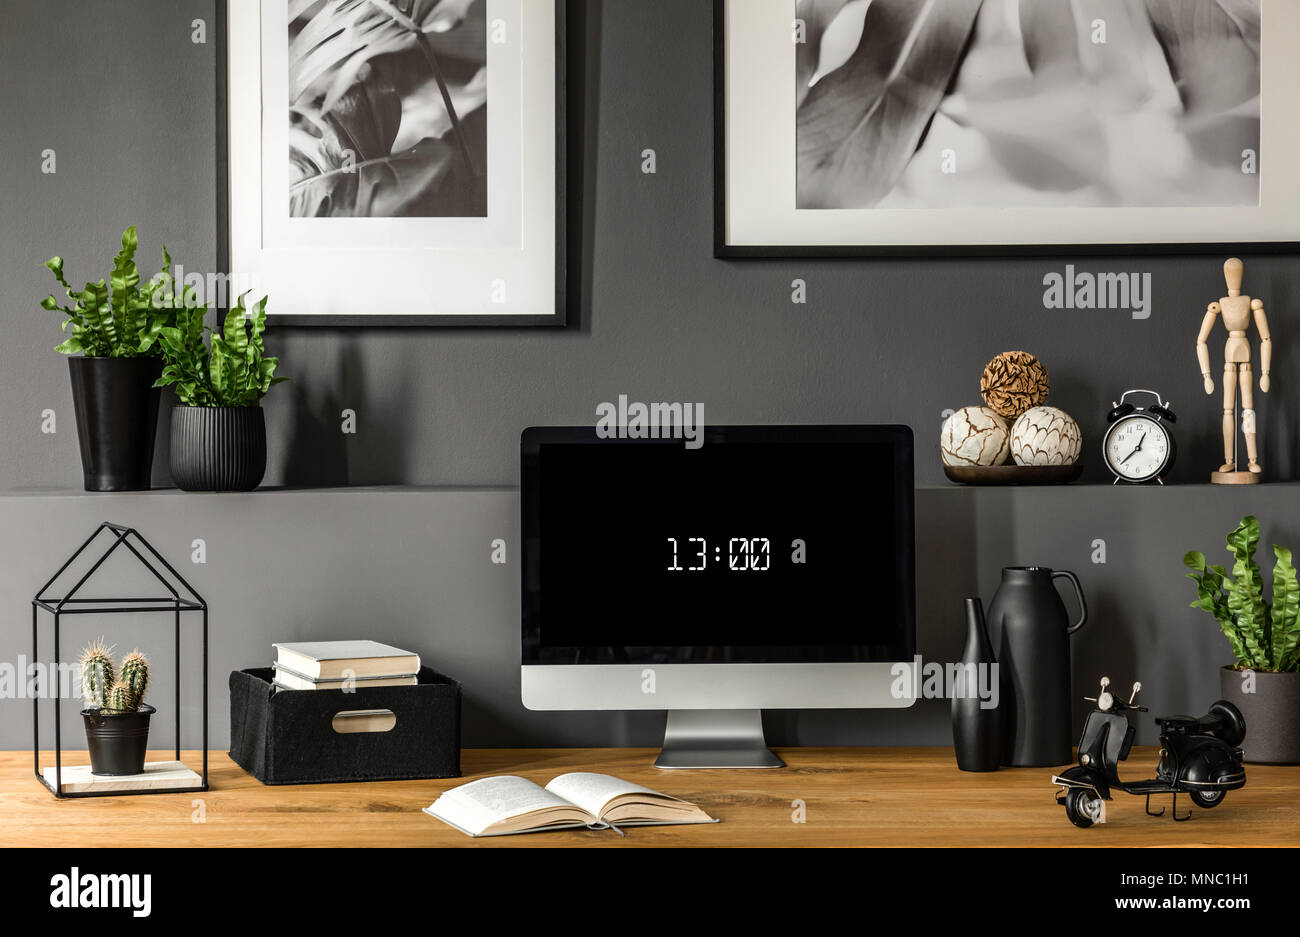 Close-up of wooden workspace with computer monitor showing the time below botanic, black and white posters. Real photo - Stock Image